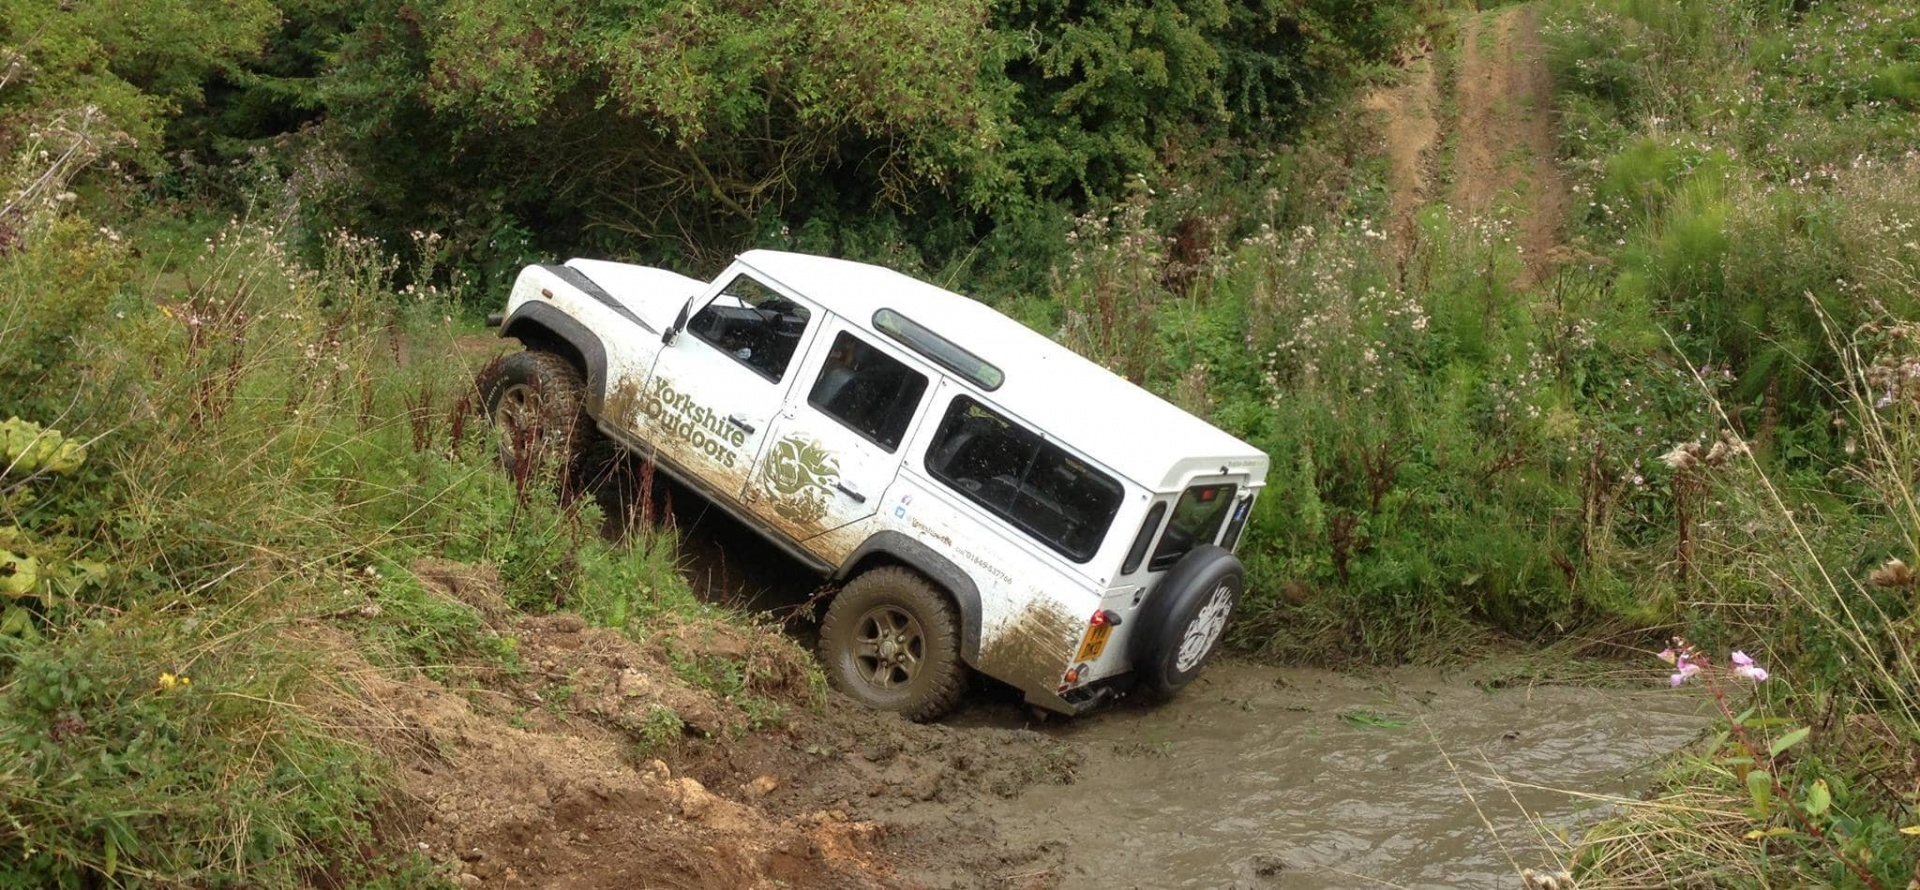 Solo 4x4 Tuition in North Yorkshire - 1 Hour-4